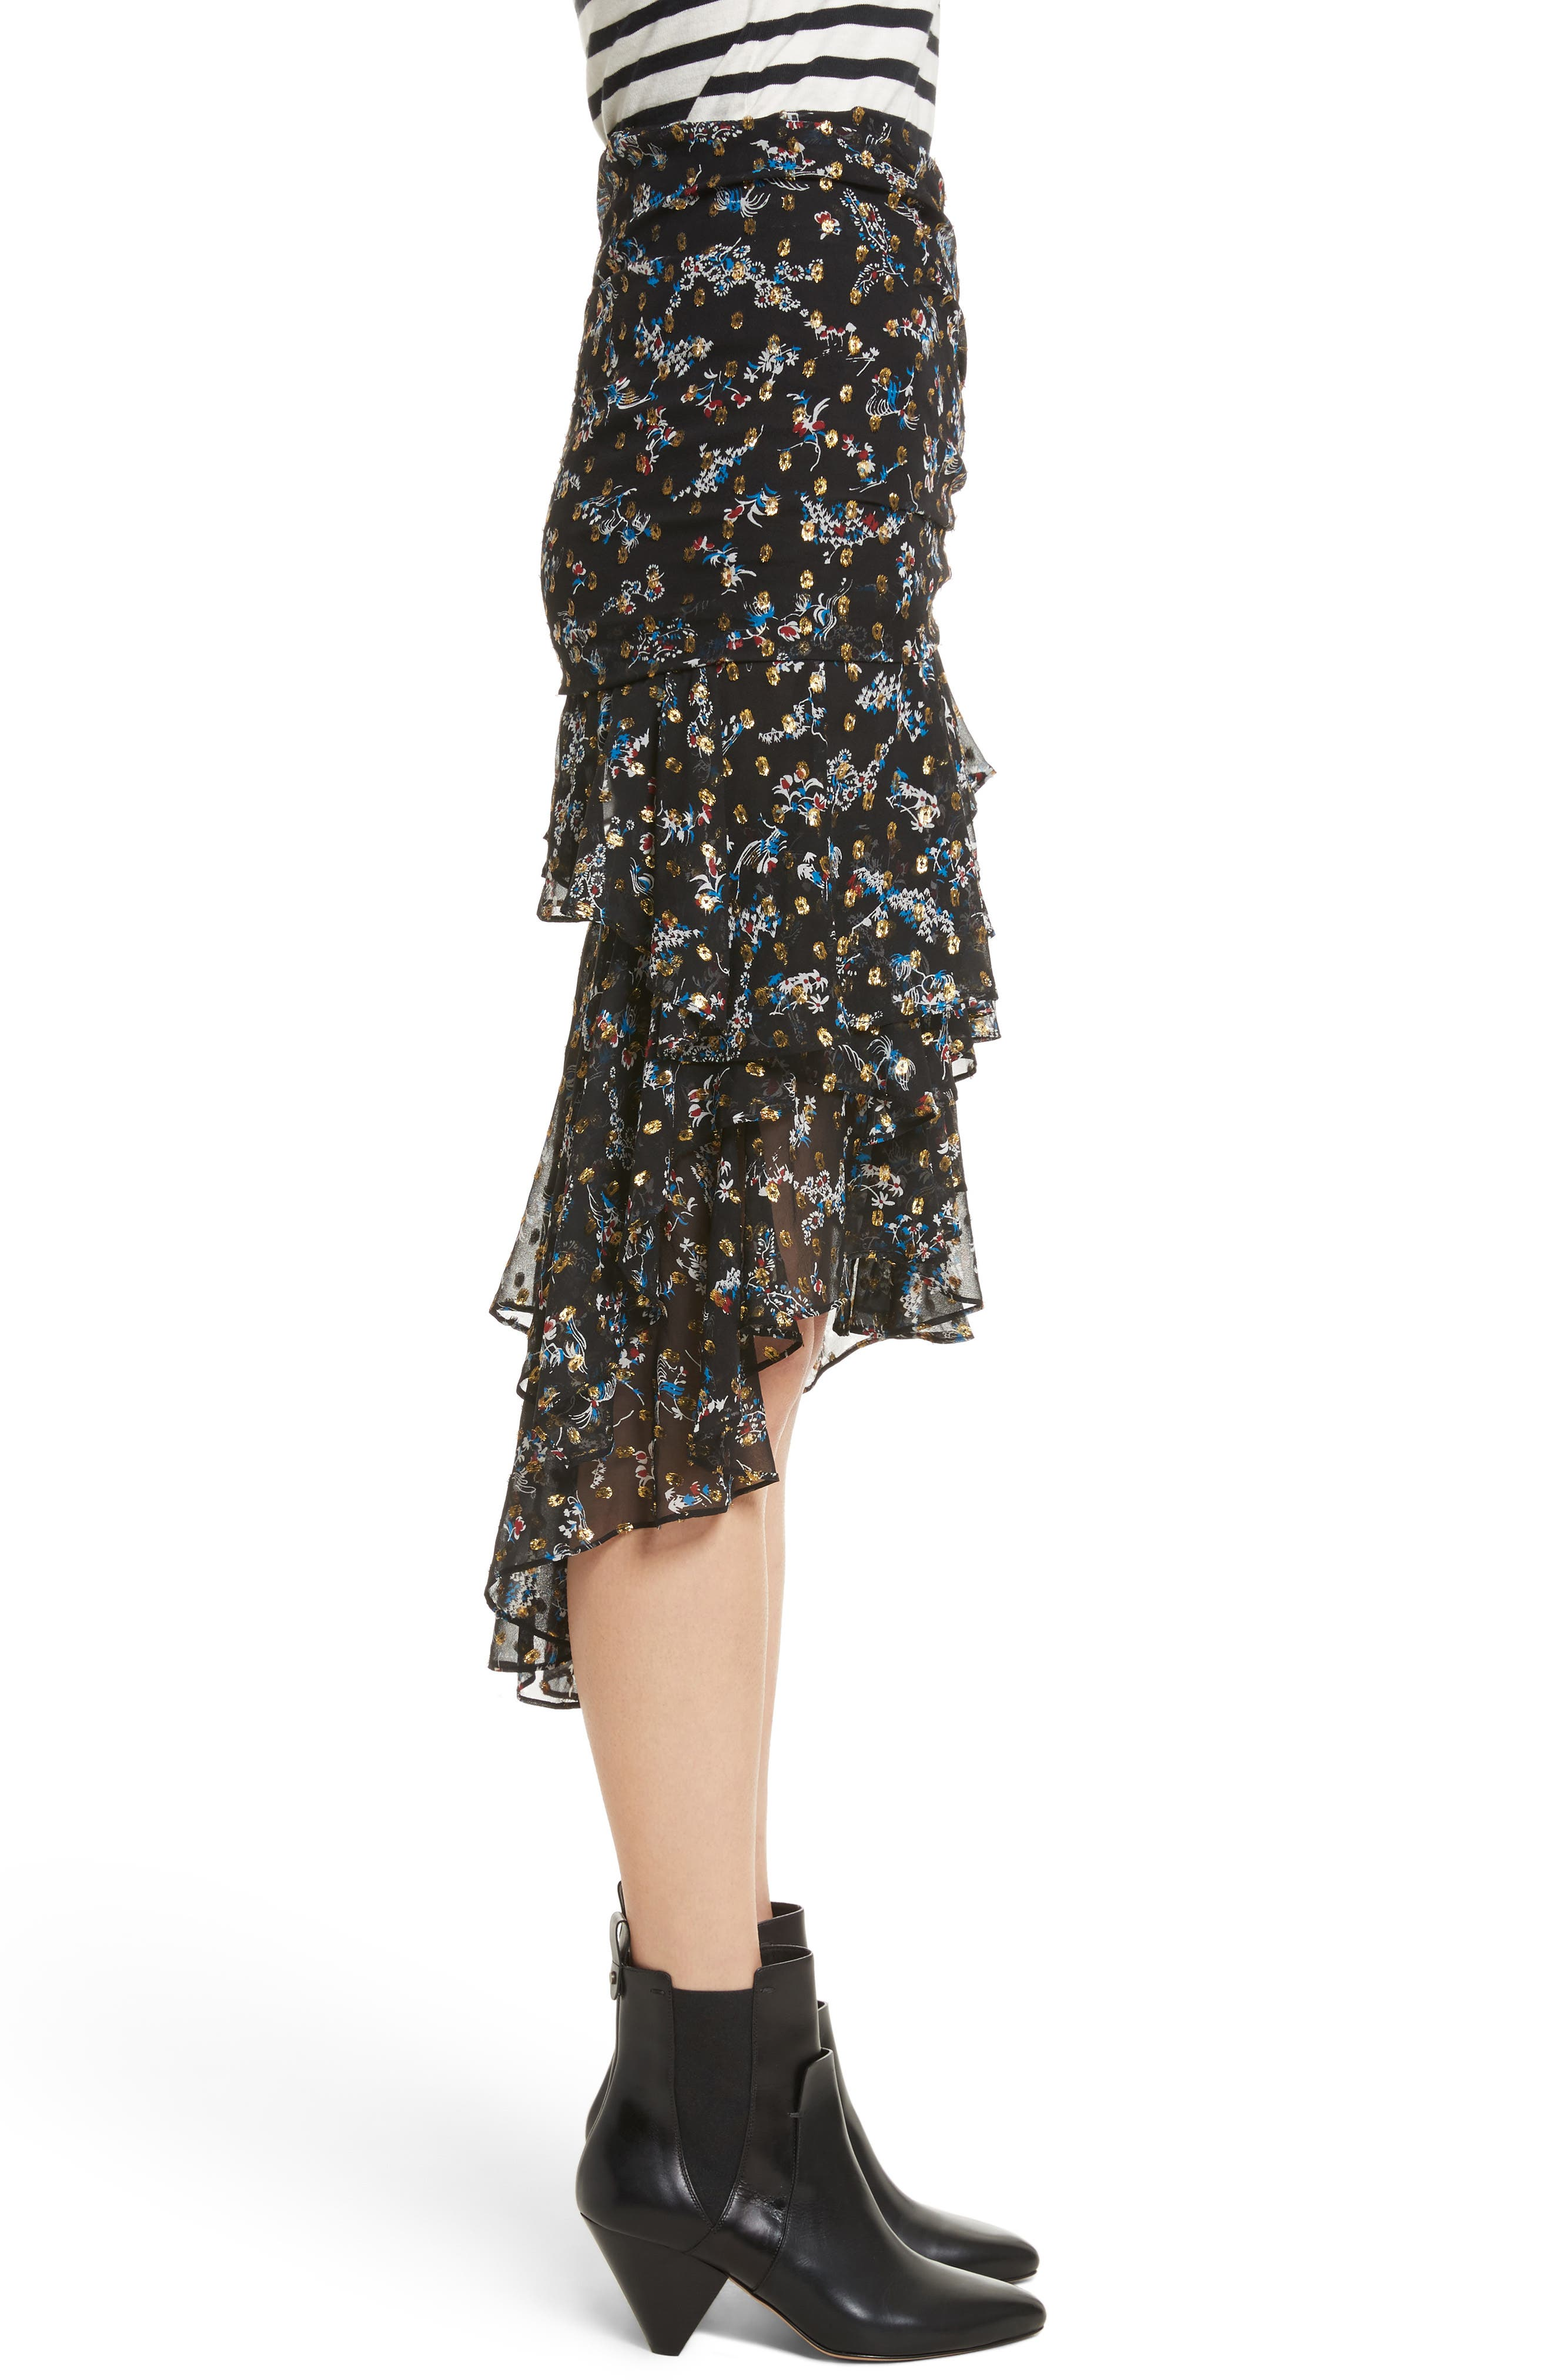 Cella Metallic Floral Print Midi Skirt,                             Alternate thumbnail 3, color,                             008